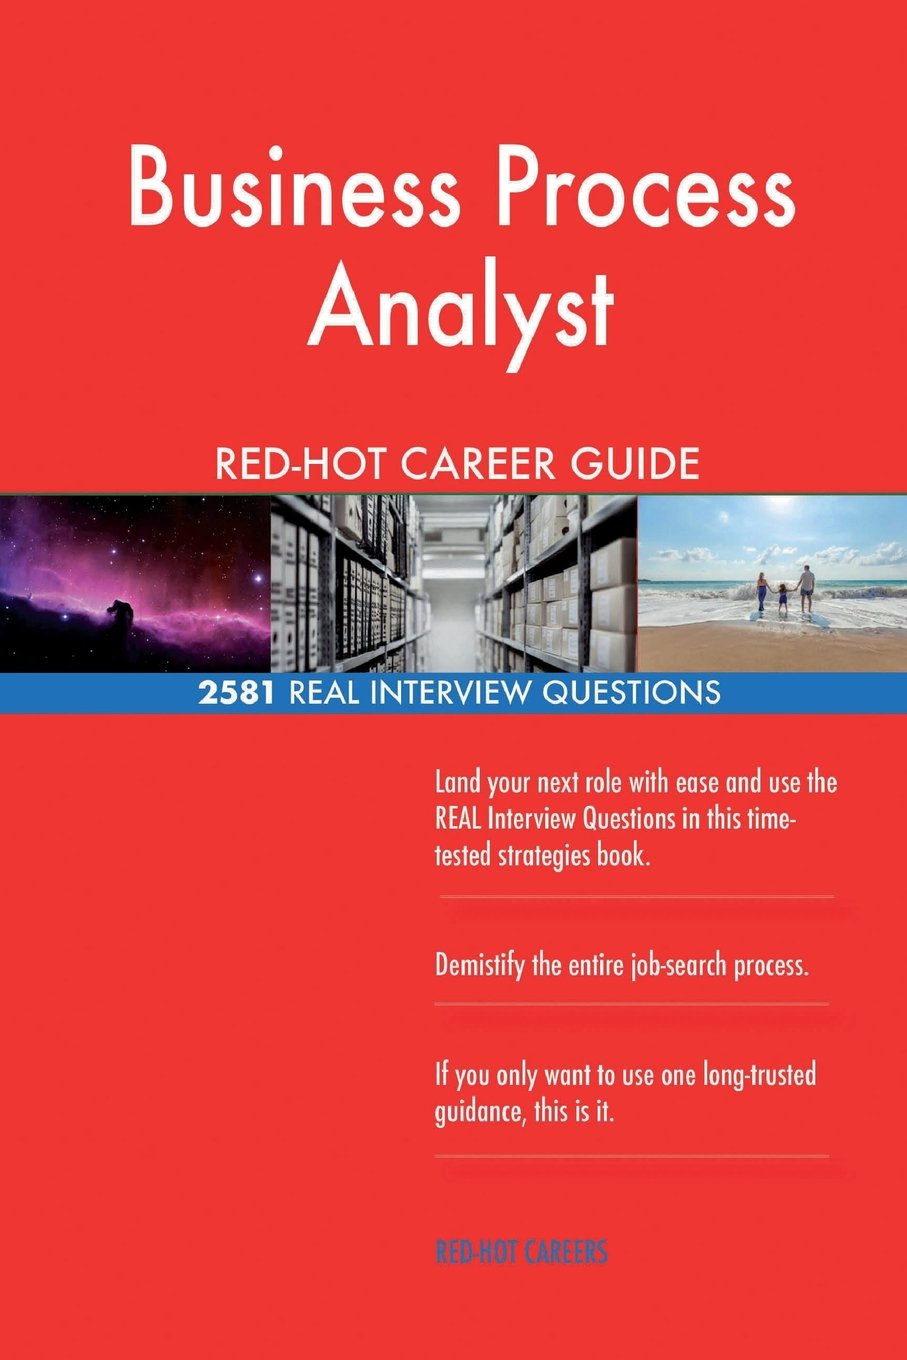 Business Process Analyst RED-HOT Career Guide